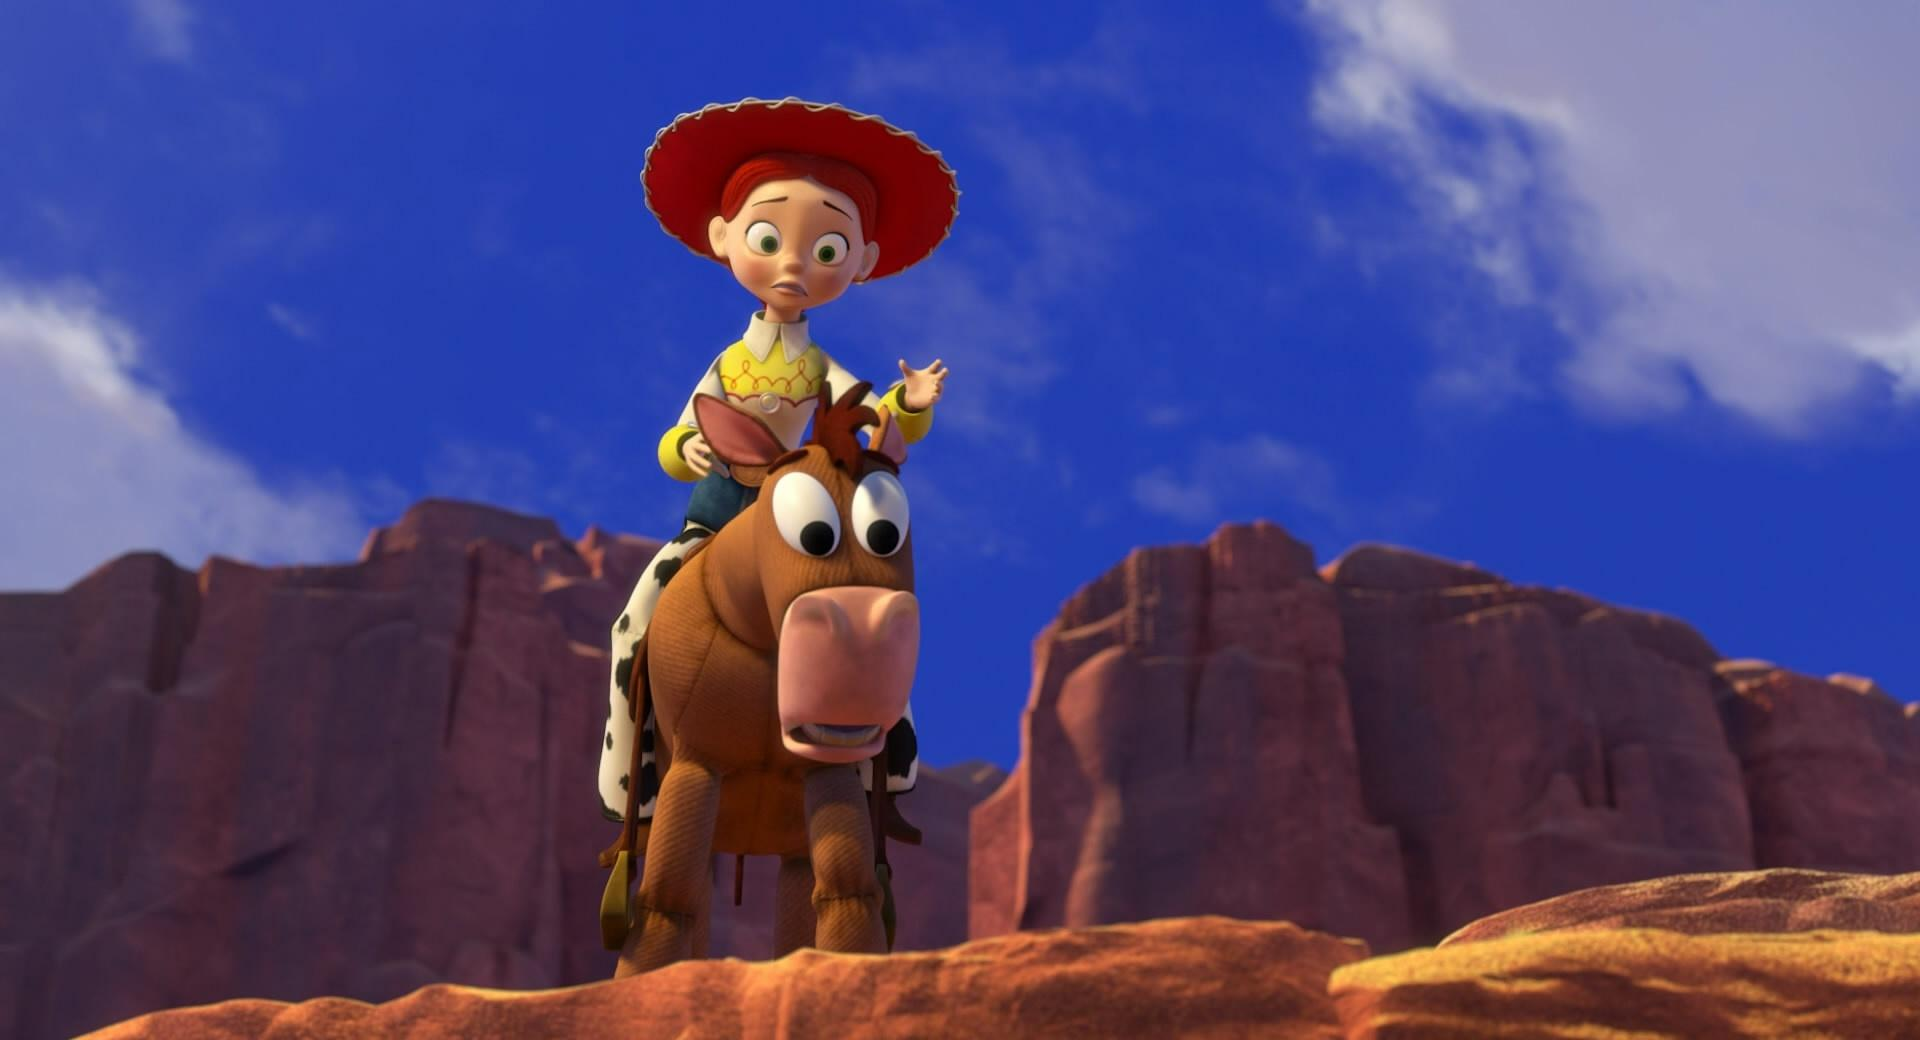 Toy Story 3 Jessie wallpapers HD quality